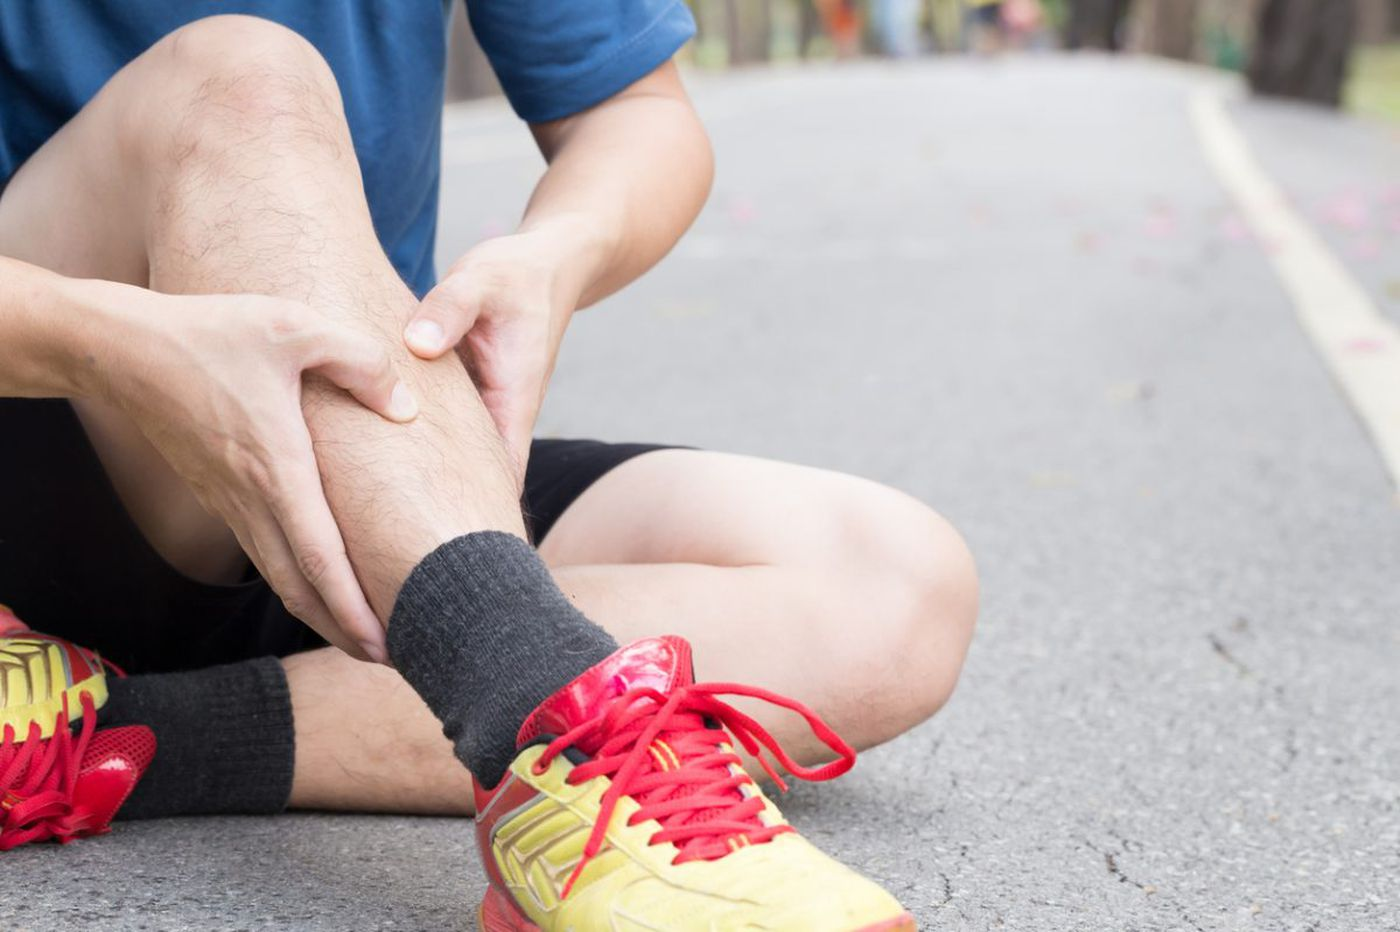 3 exercises to ease shin splints - and prevent them